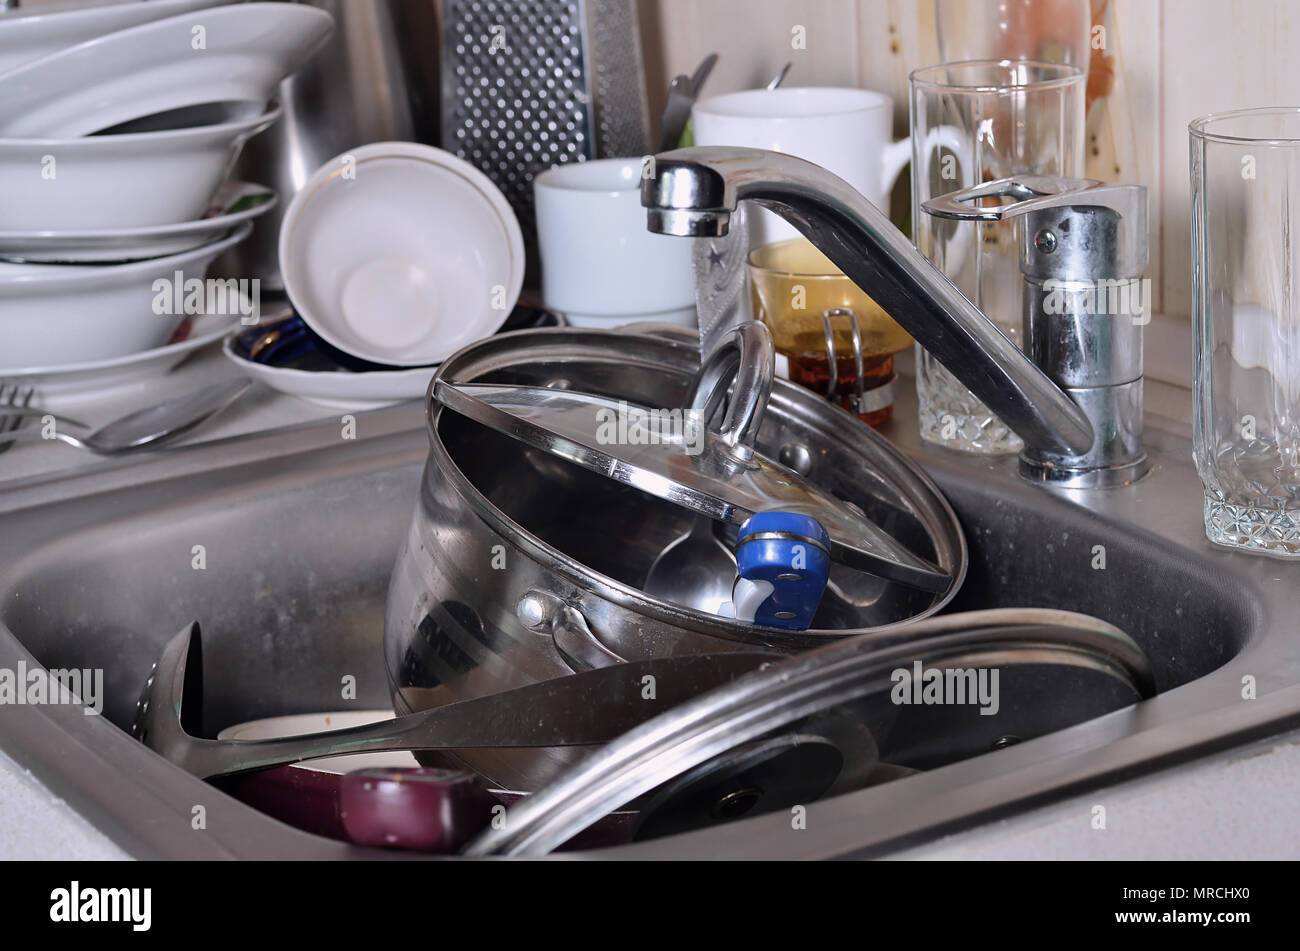 A huge pile of unwashed dishes in the kitchen sink and on the ...